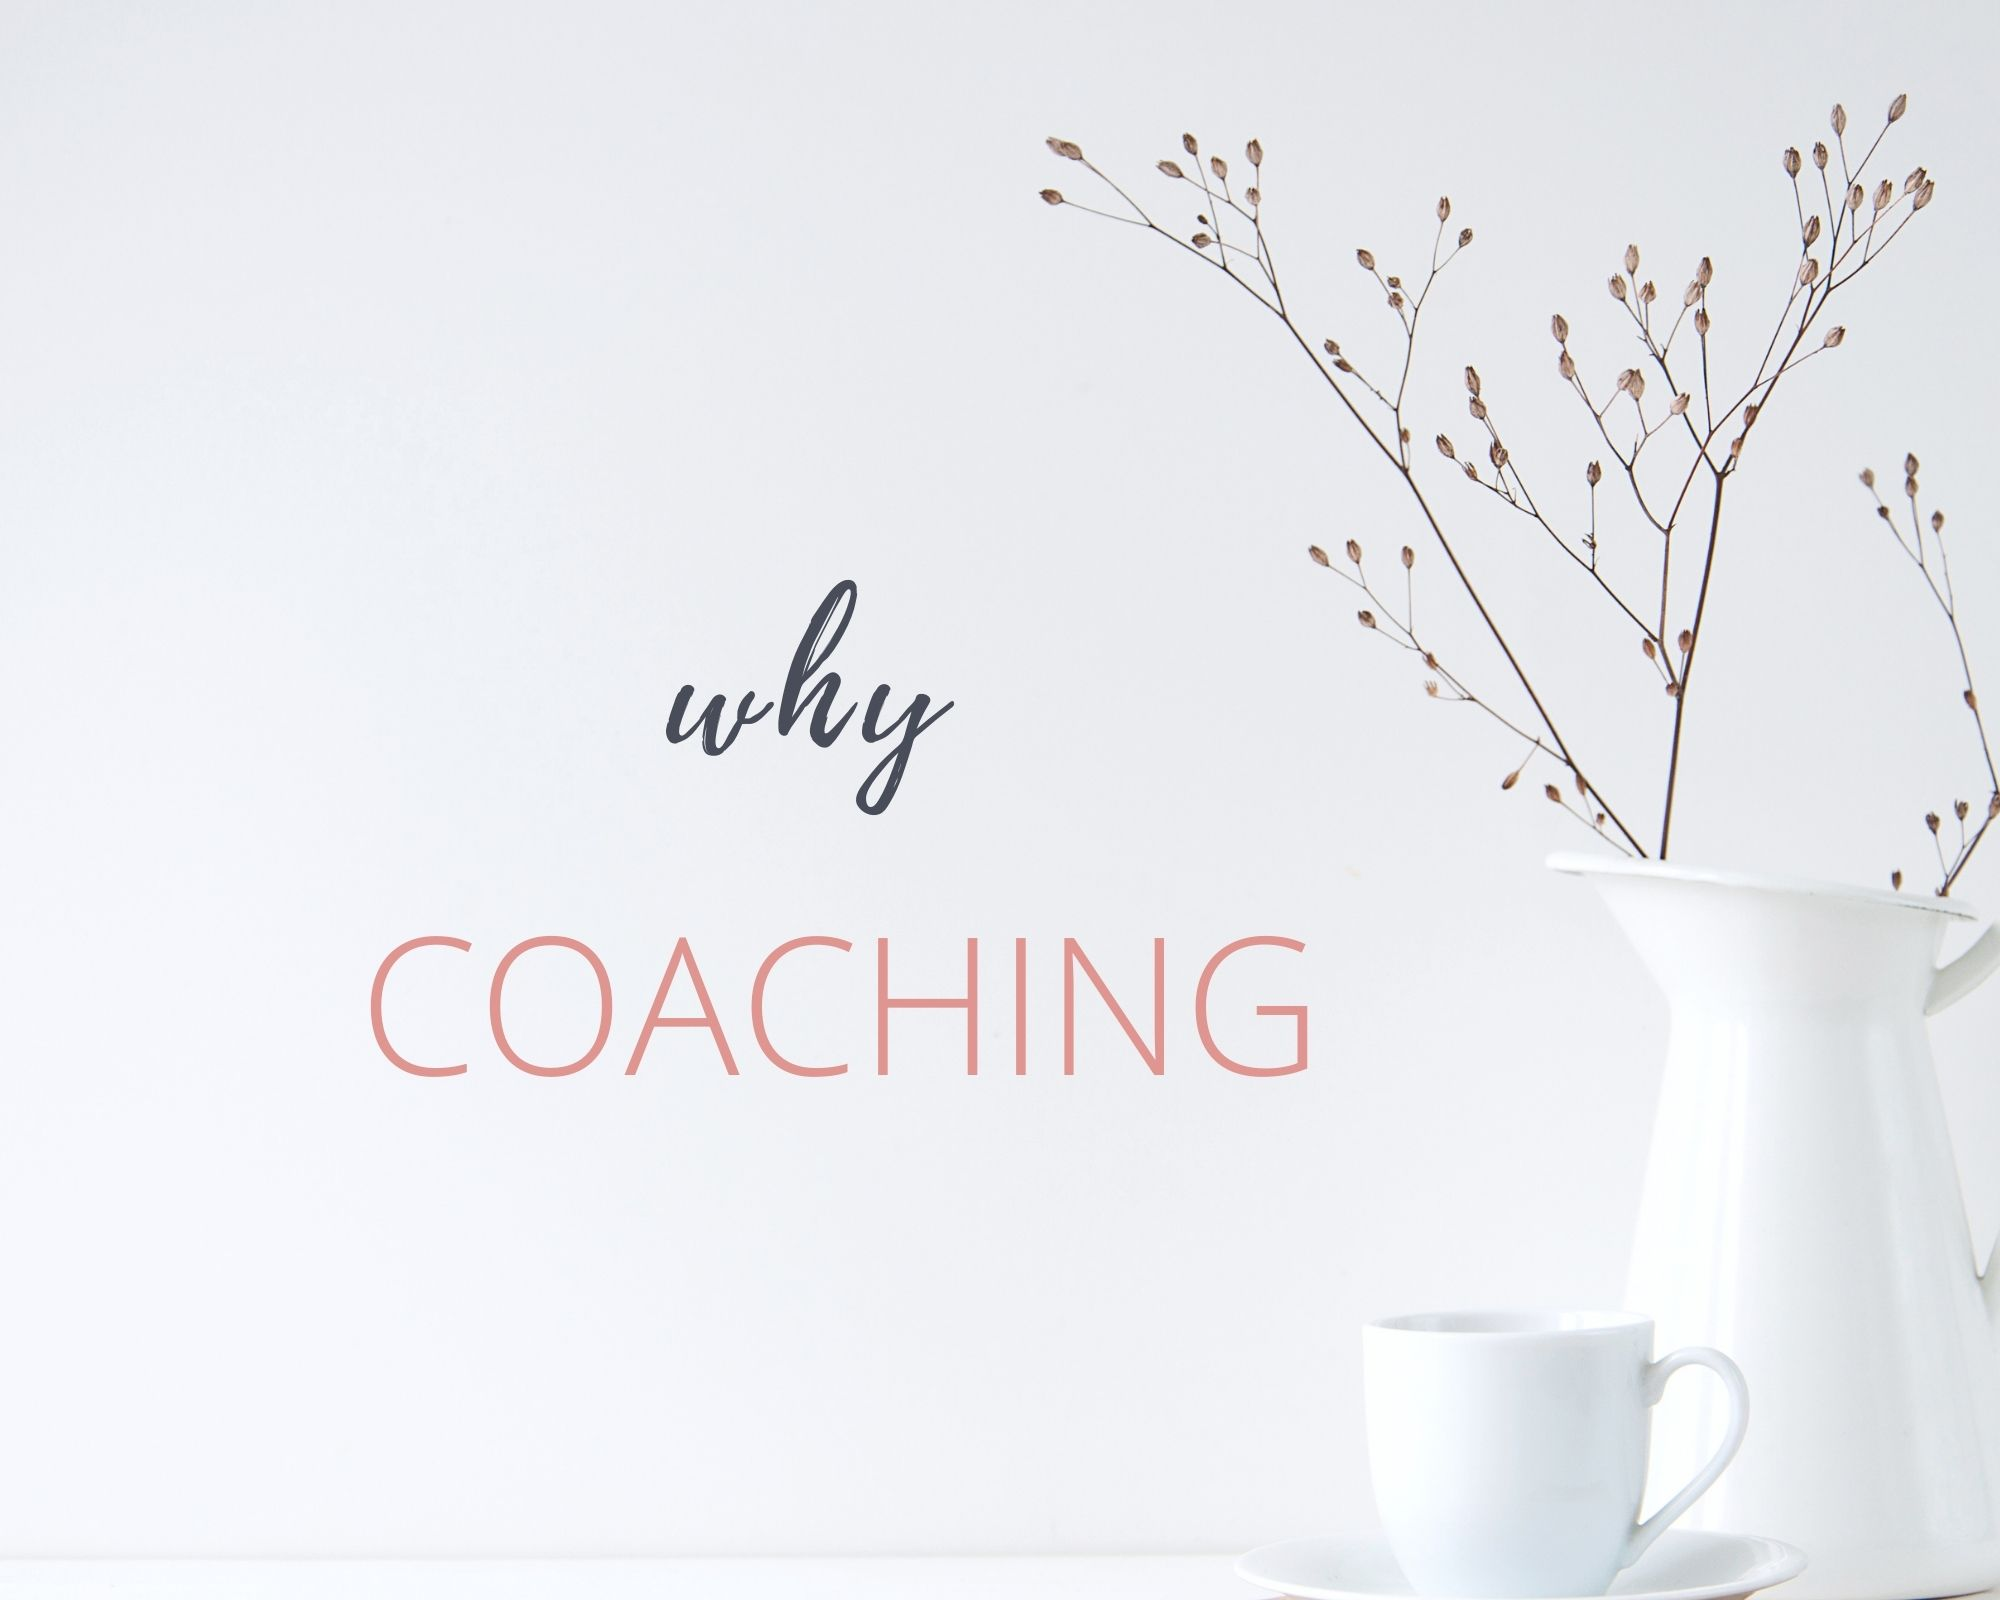 why coaching image